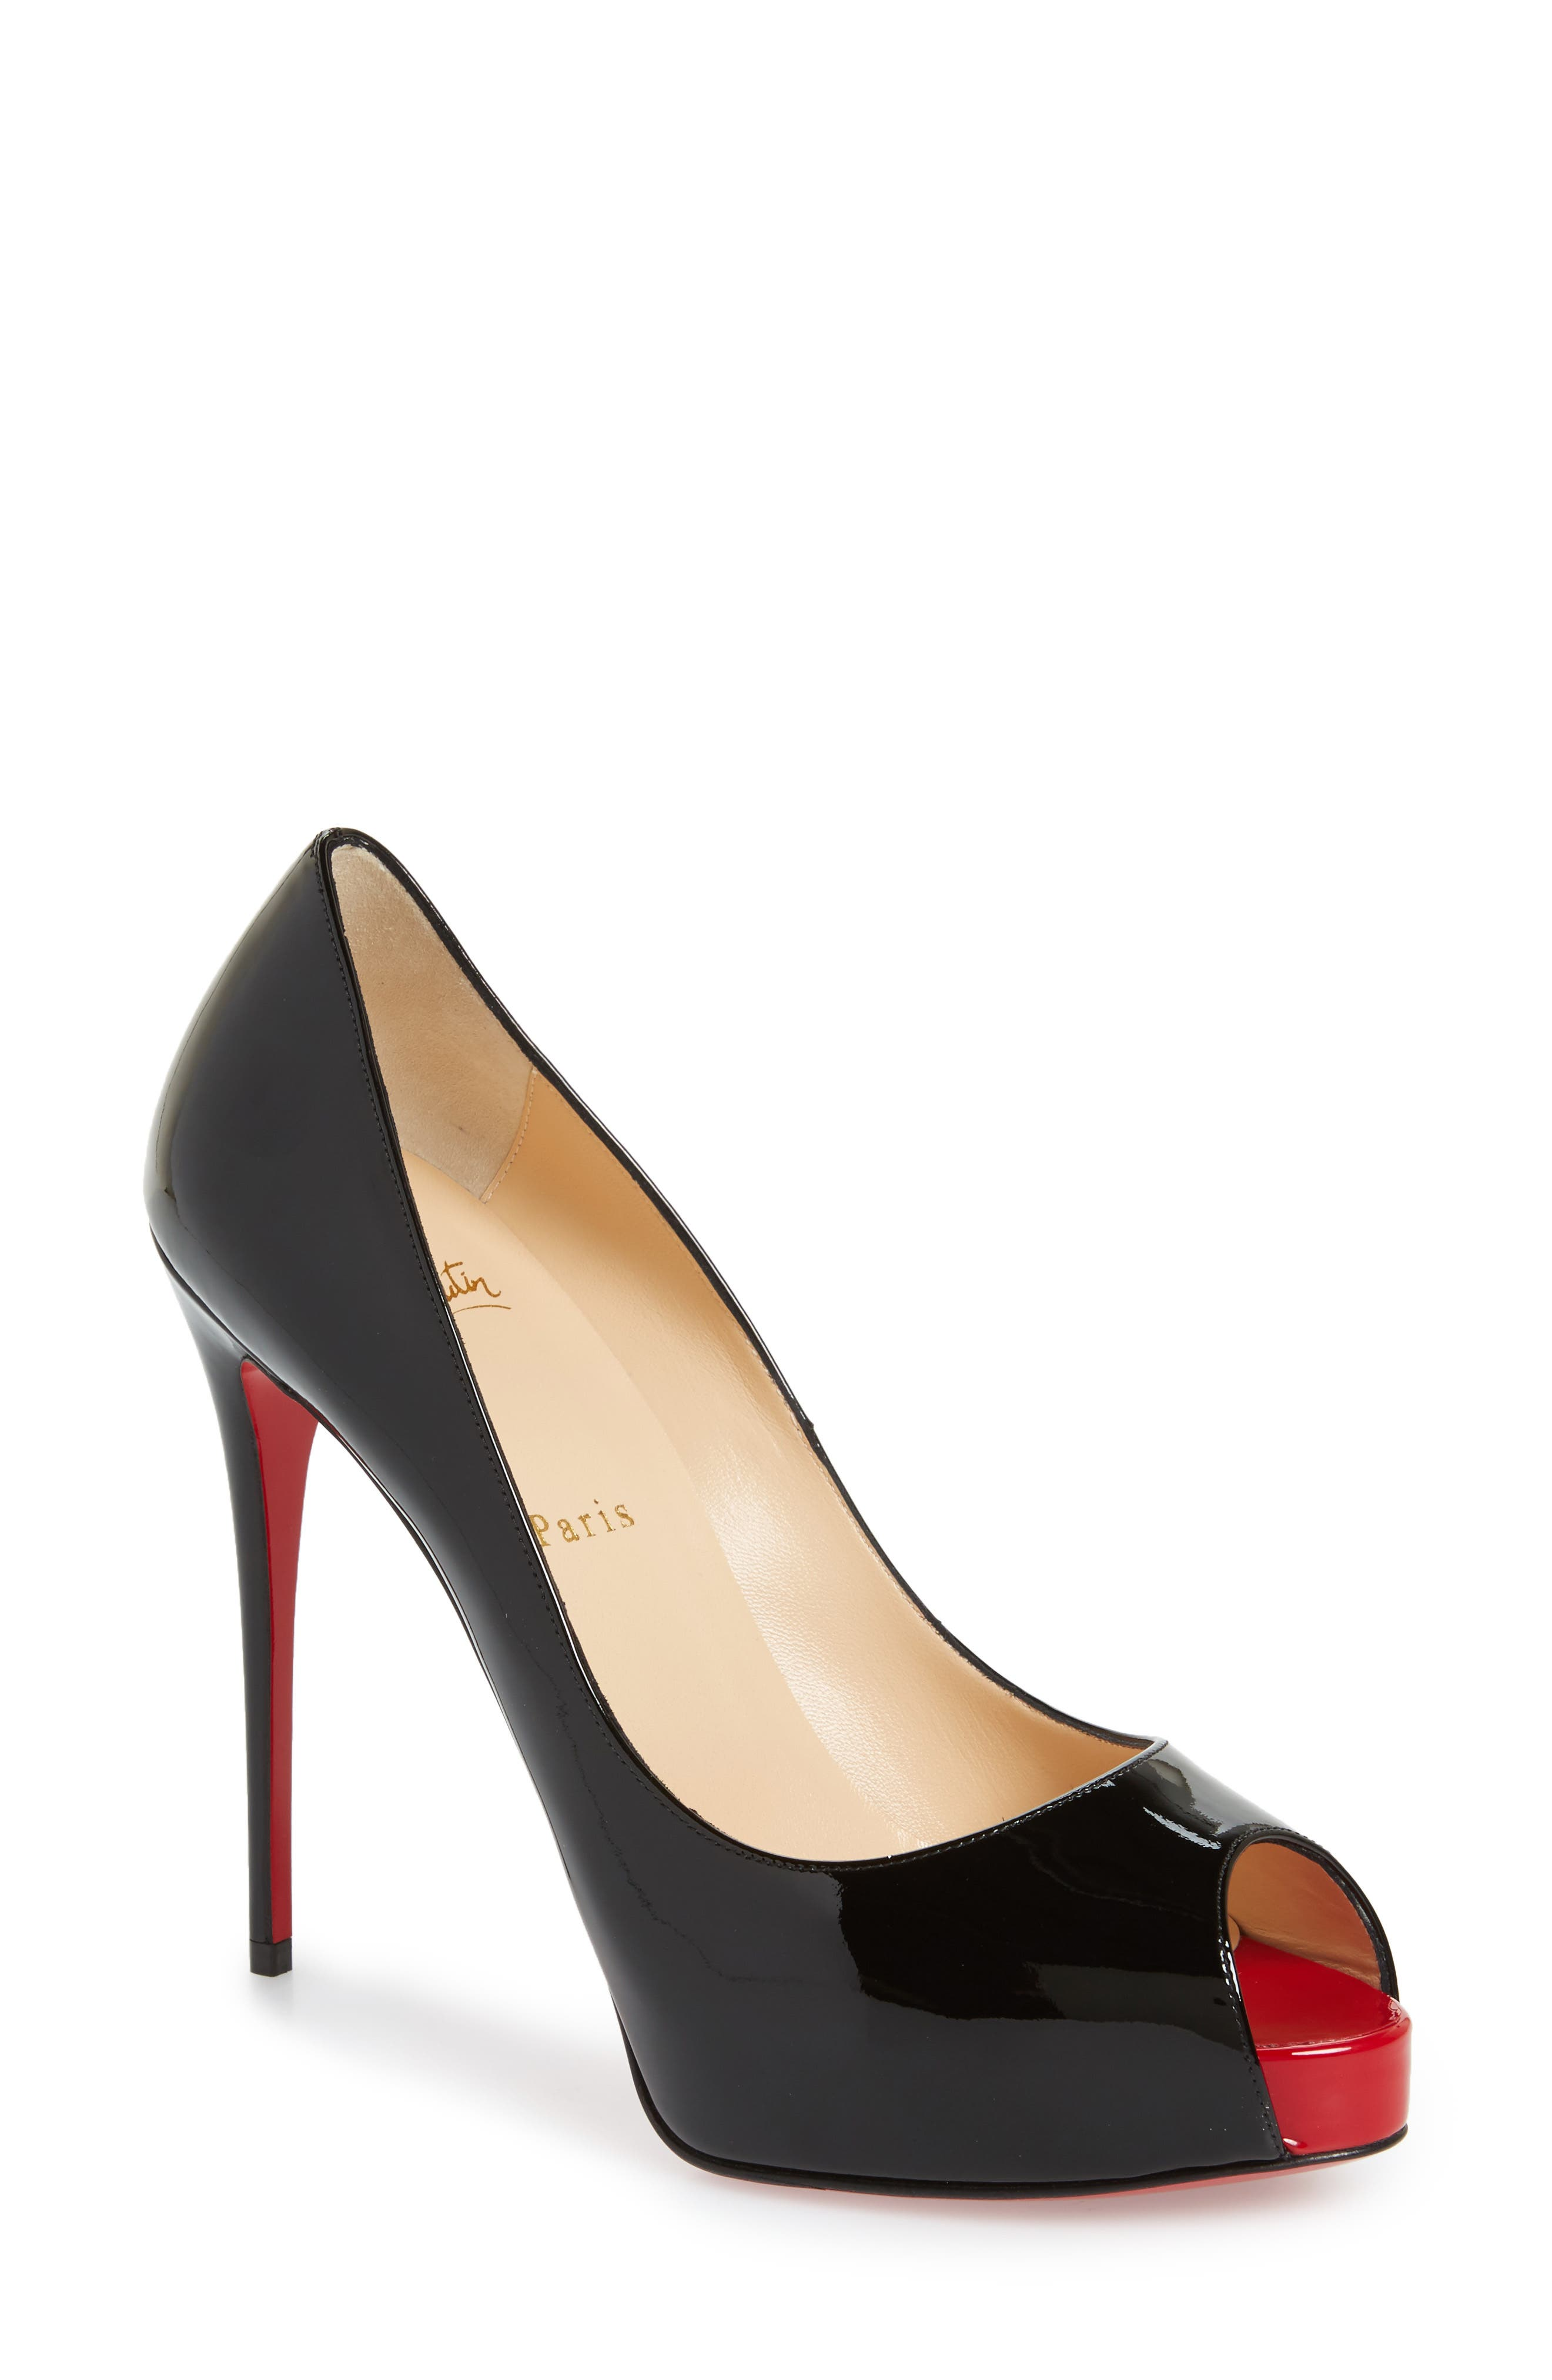 'Prive' Open Toe Pump,                             Main thumbnail 1, color,                             Black/ Red